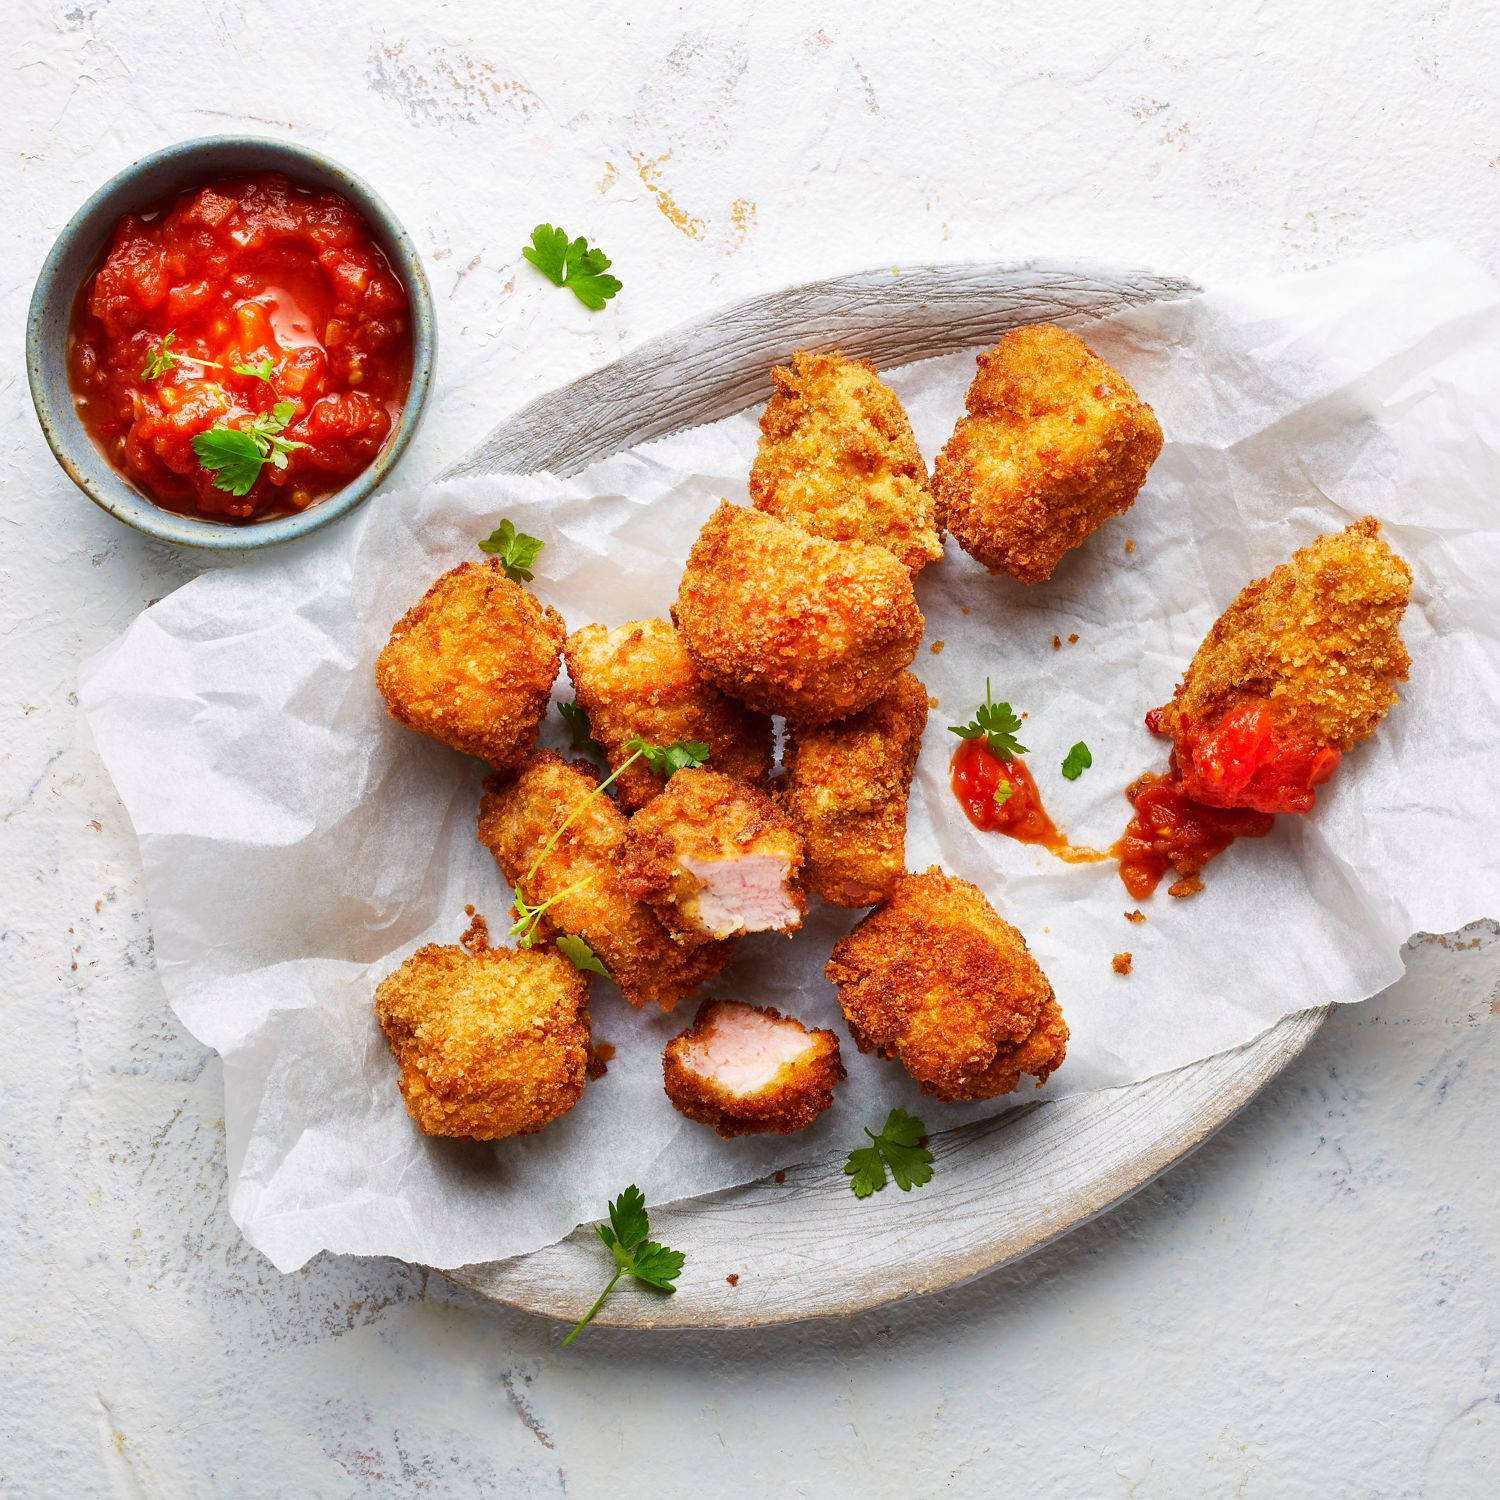 Knusprige Medaillon Nuggets mit Spicy Tomatensauce